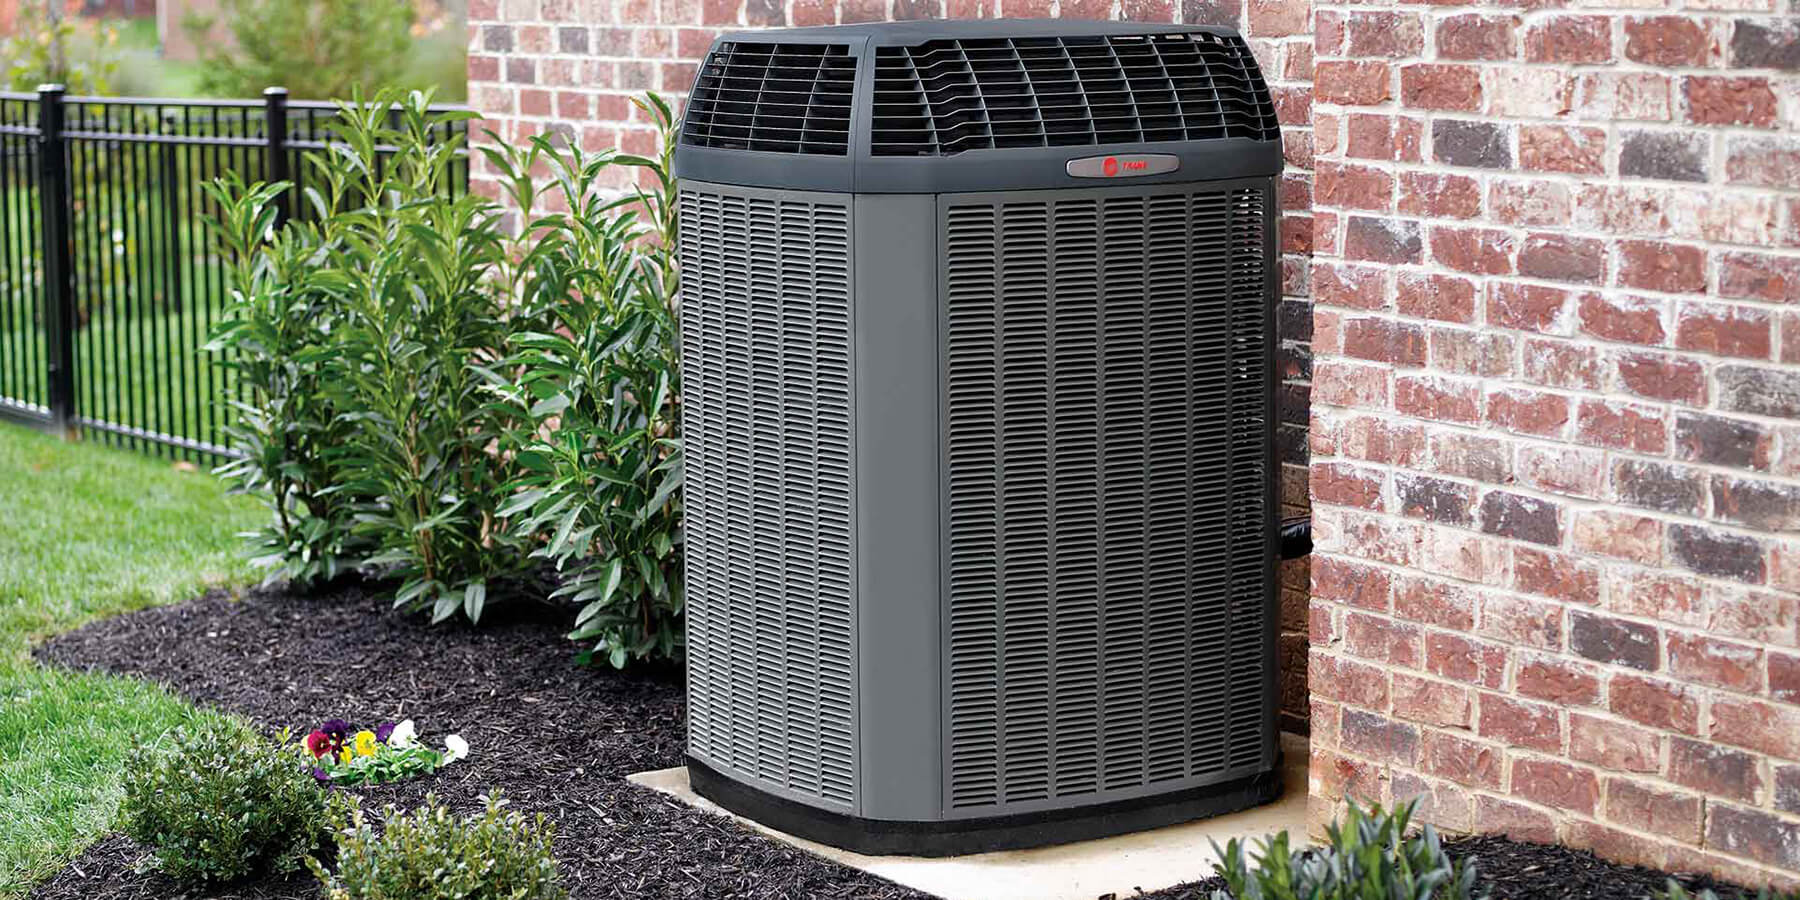 Trane air conditioning unit installed outside of brick home.